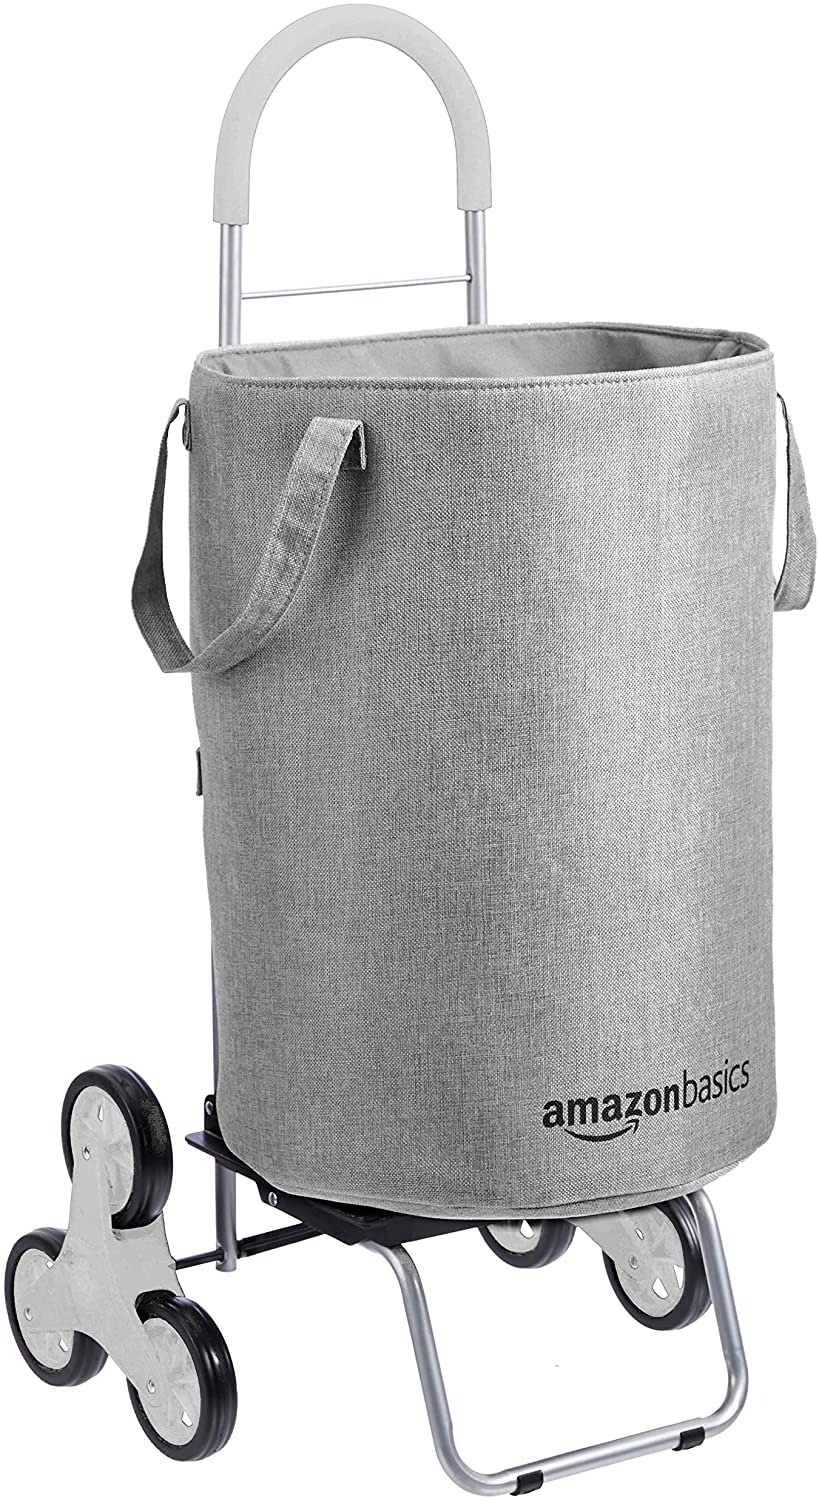 AmazonBasics Stair Climber Rolling Laundry Hamper Converts into Dolly, 38 inch Handle Height, Grey